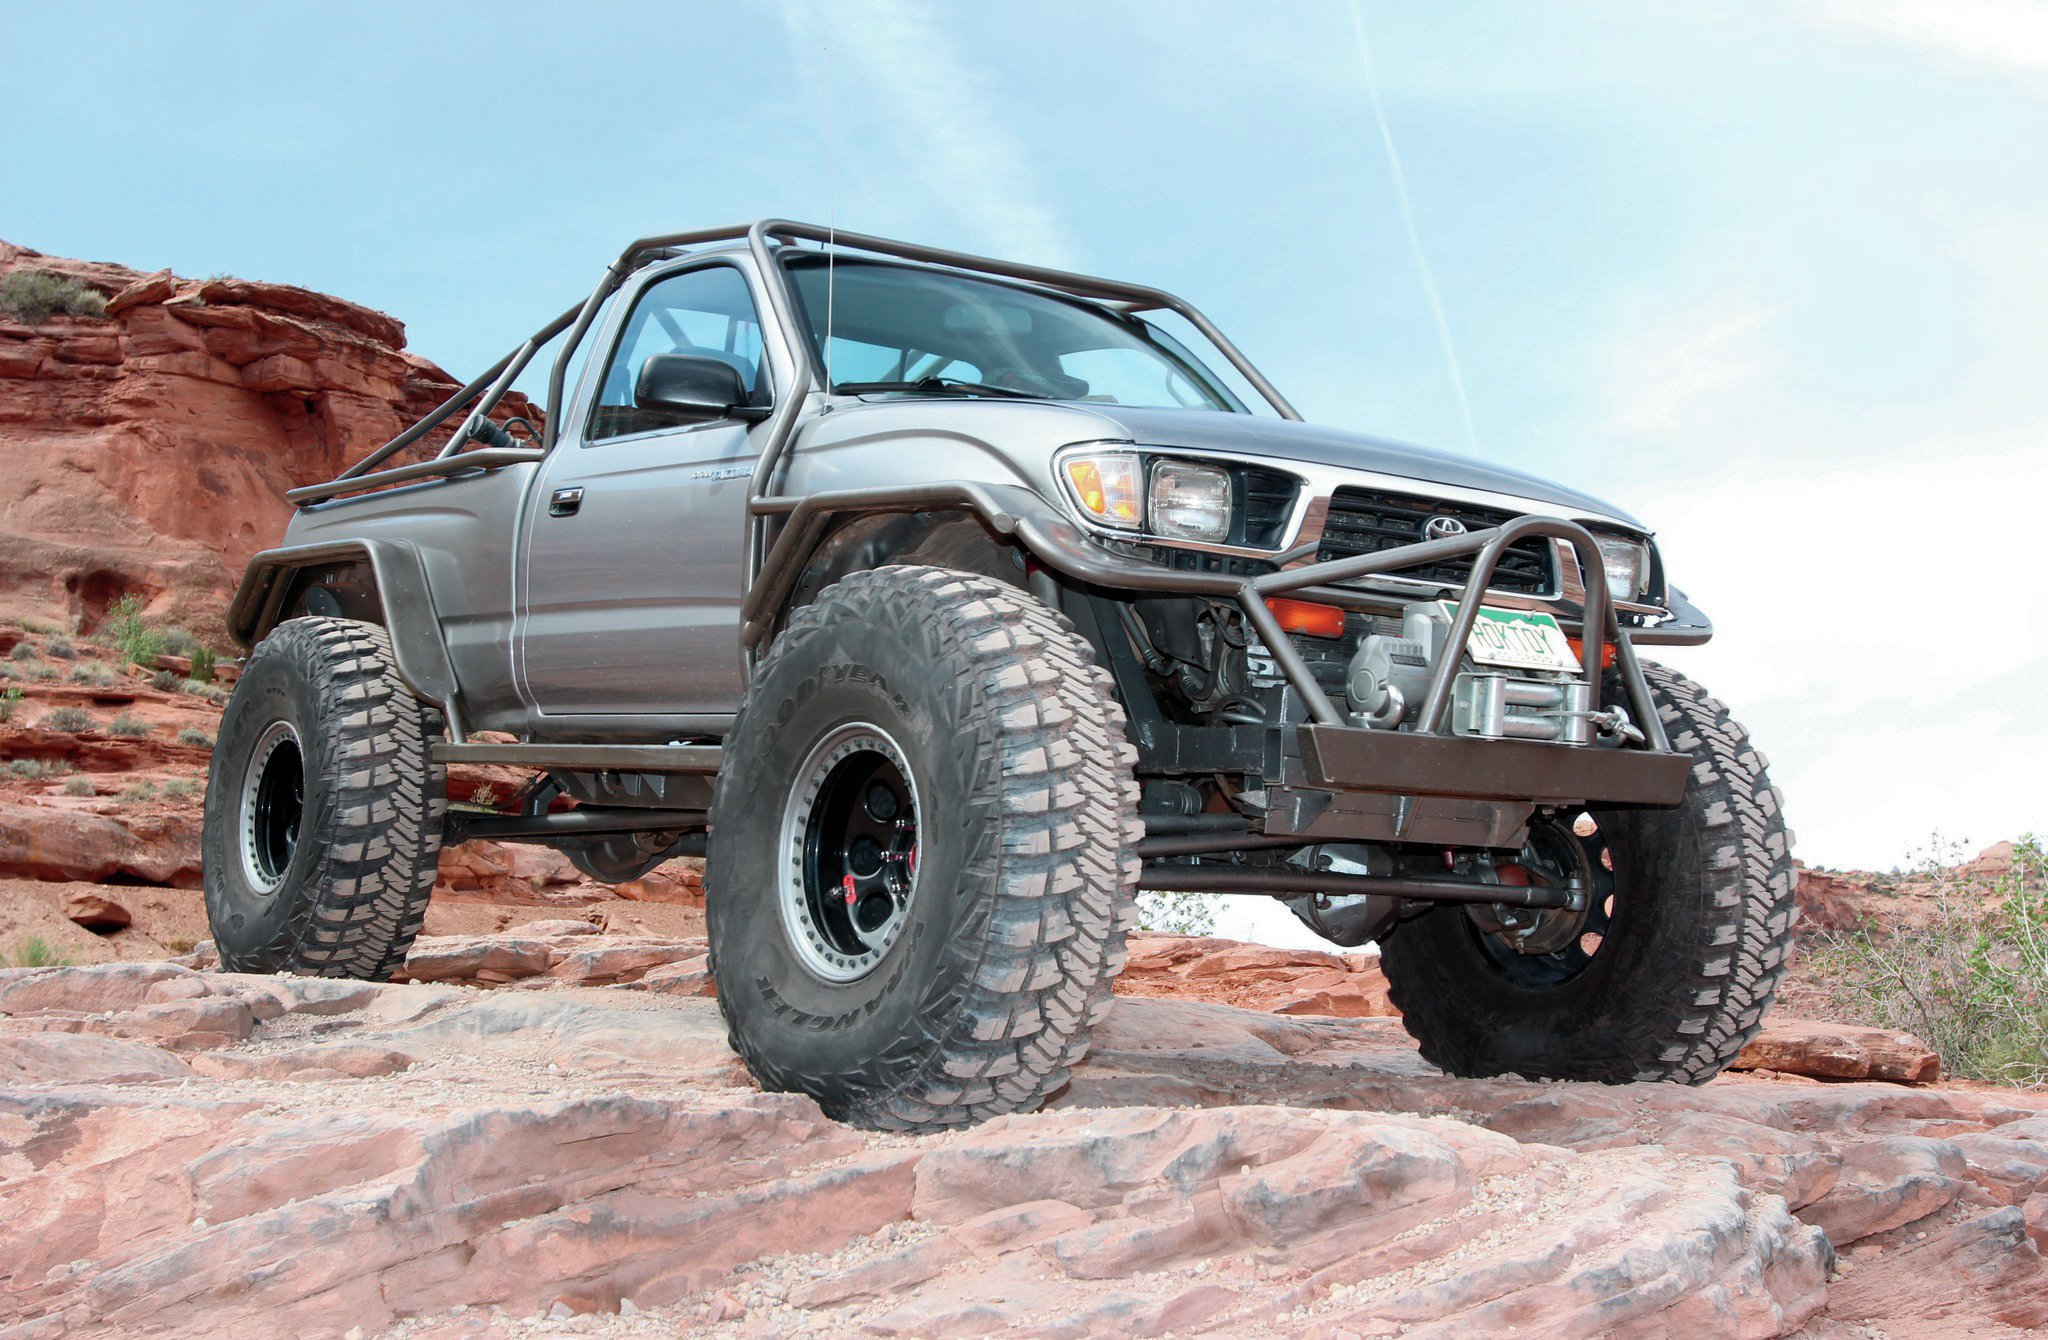 Crist says the original wheelbase of the Tacoma was 103 inches, but it is now 114 inches. This longer wheelbase was accomplished by moving the front axle forward 8 inches and the rear axle aft 3 inches. The frame of the truck was also modified. Six inches of frame was removed above the rear axle and new inboard frame sections were added to allow for shock clearance. Even with about 7 inches of suspension lift, the front fenders and bedsides had to be radiused to allow the large 42-inch tires to move freely.